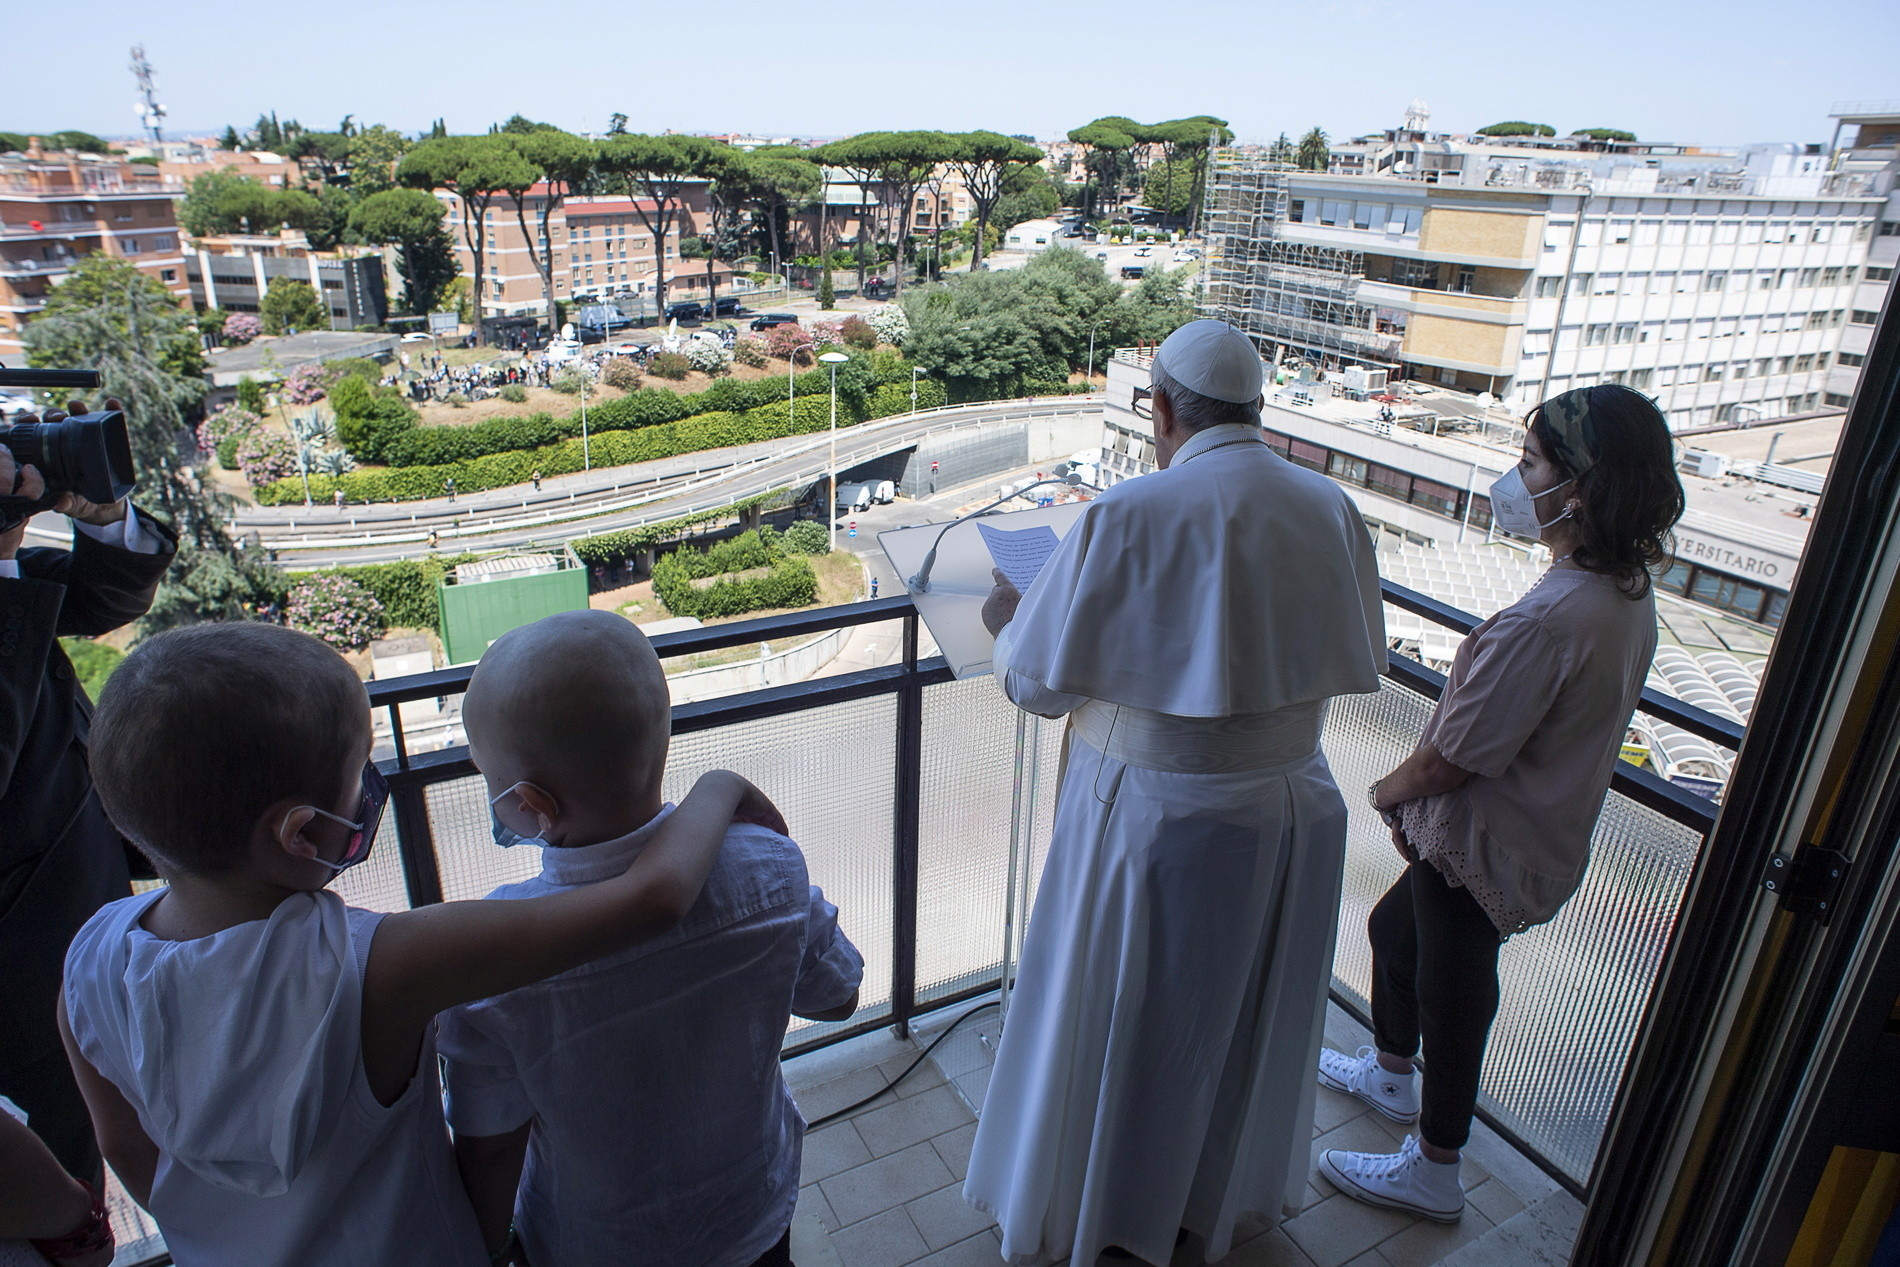 Children accompany Pope Francis as he leads the Angelus prayer from a balcony of the Gemelli hospital, as he recovers following scheduled surgery on his colon, in Rome, Italy